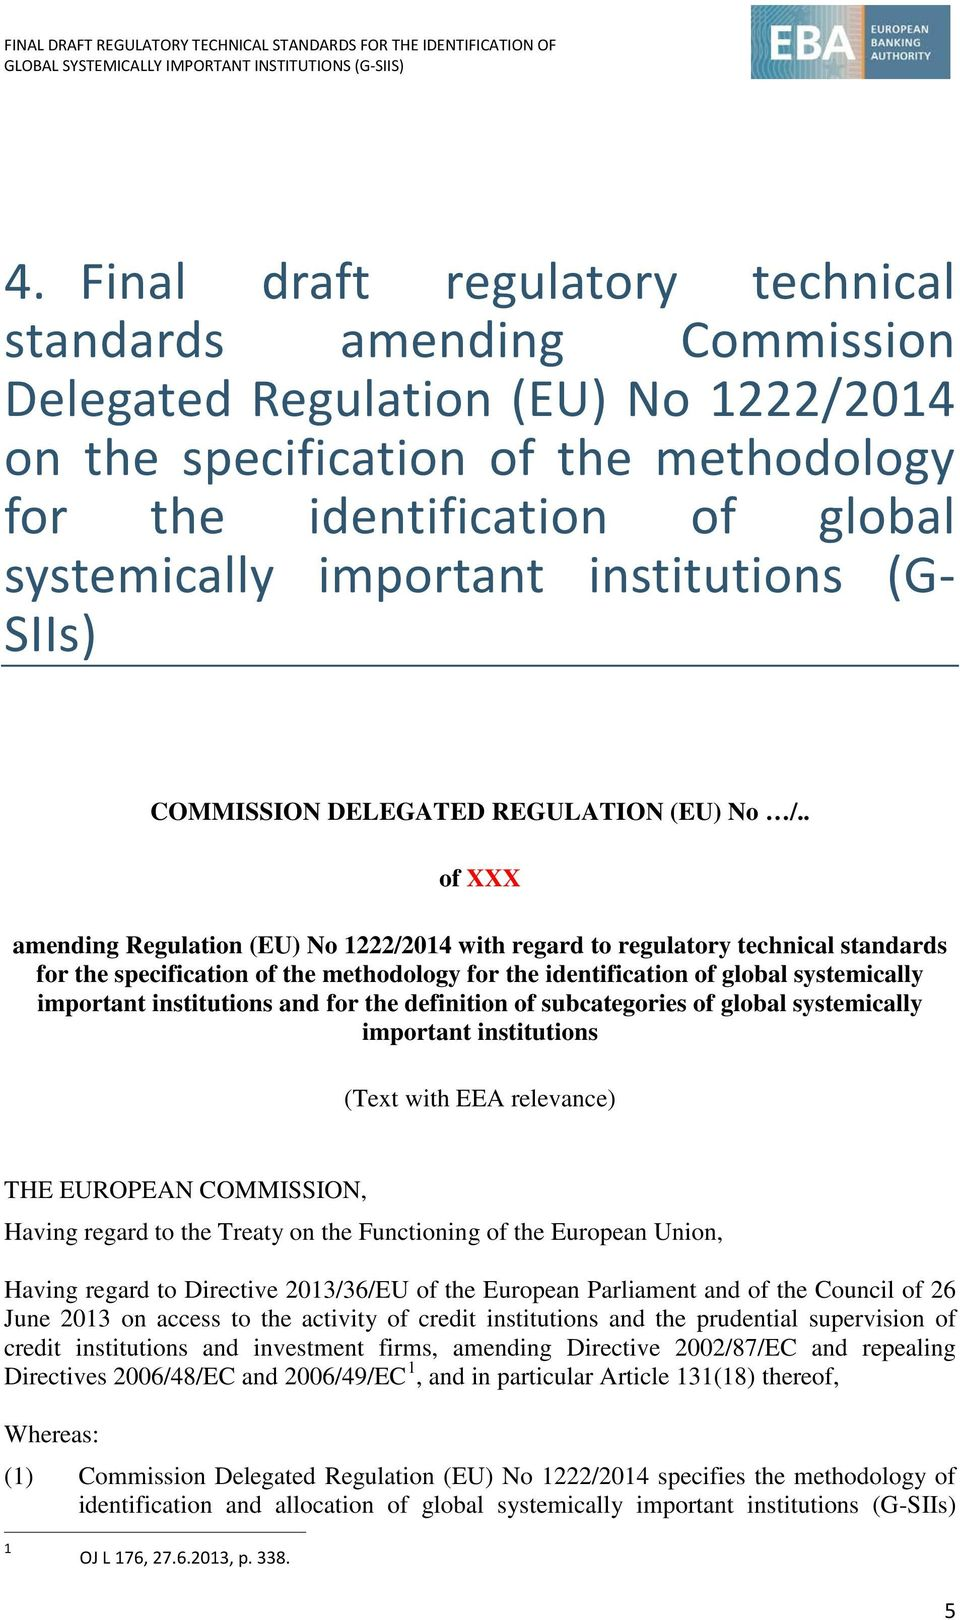 . of XXX amending Regulation (EU) No 1222/2014 with regard to regulatory technical standards for the specification of the methodology for the identification of global systemically important